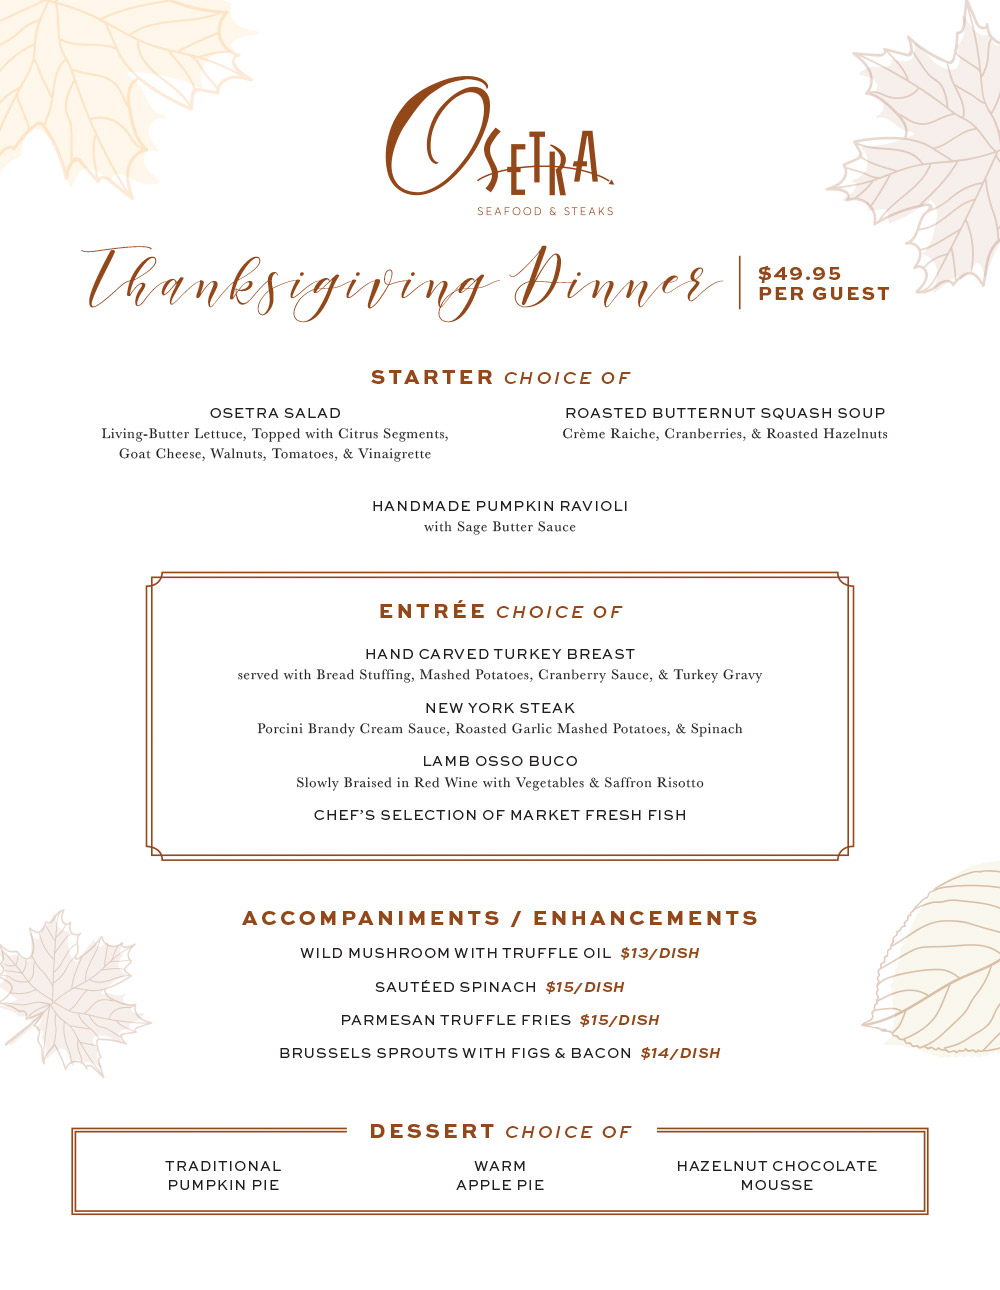 osetra-menu-thanksgiving.jpg